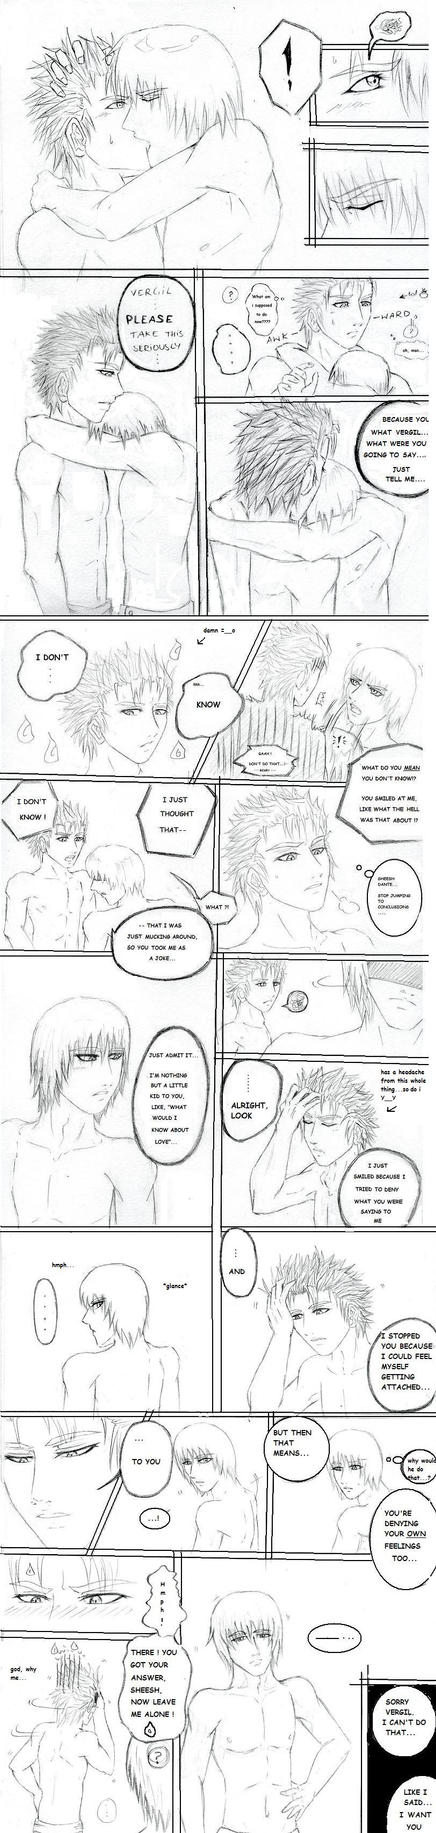 All i wanted pgs 6,7,8-DxV- by Silent-Neutral